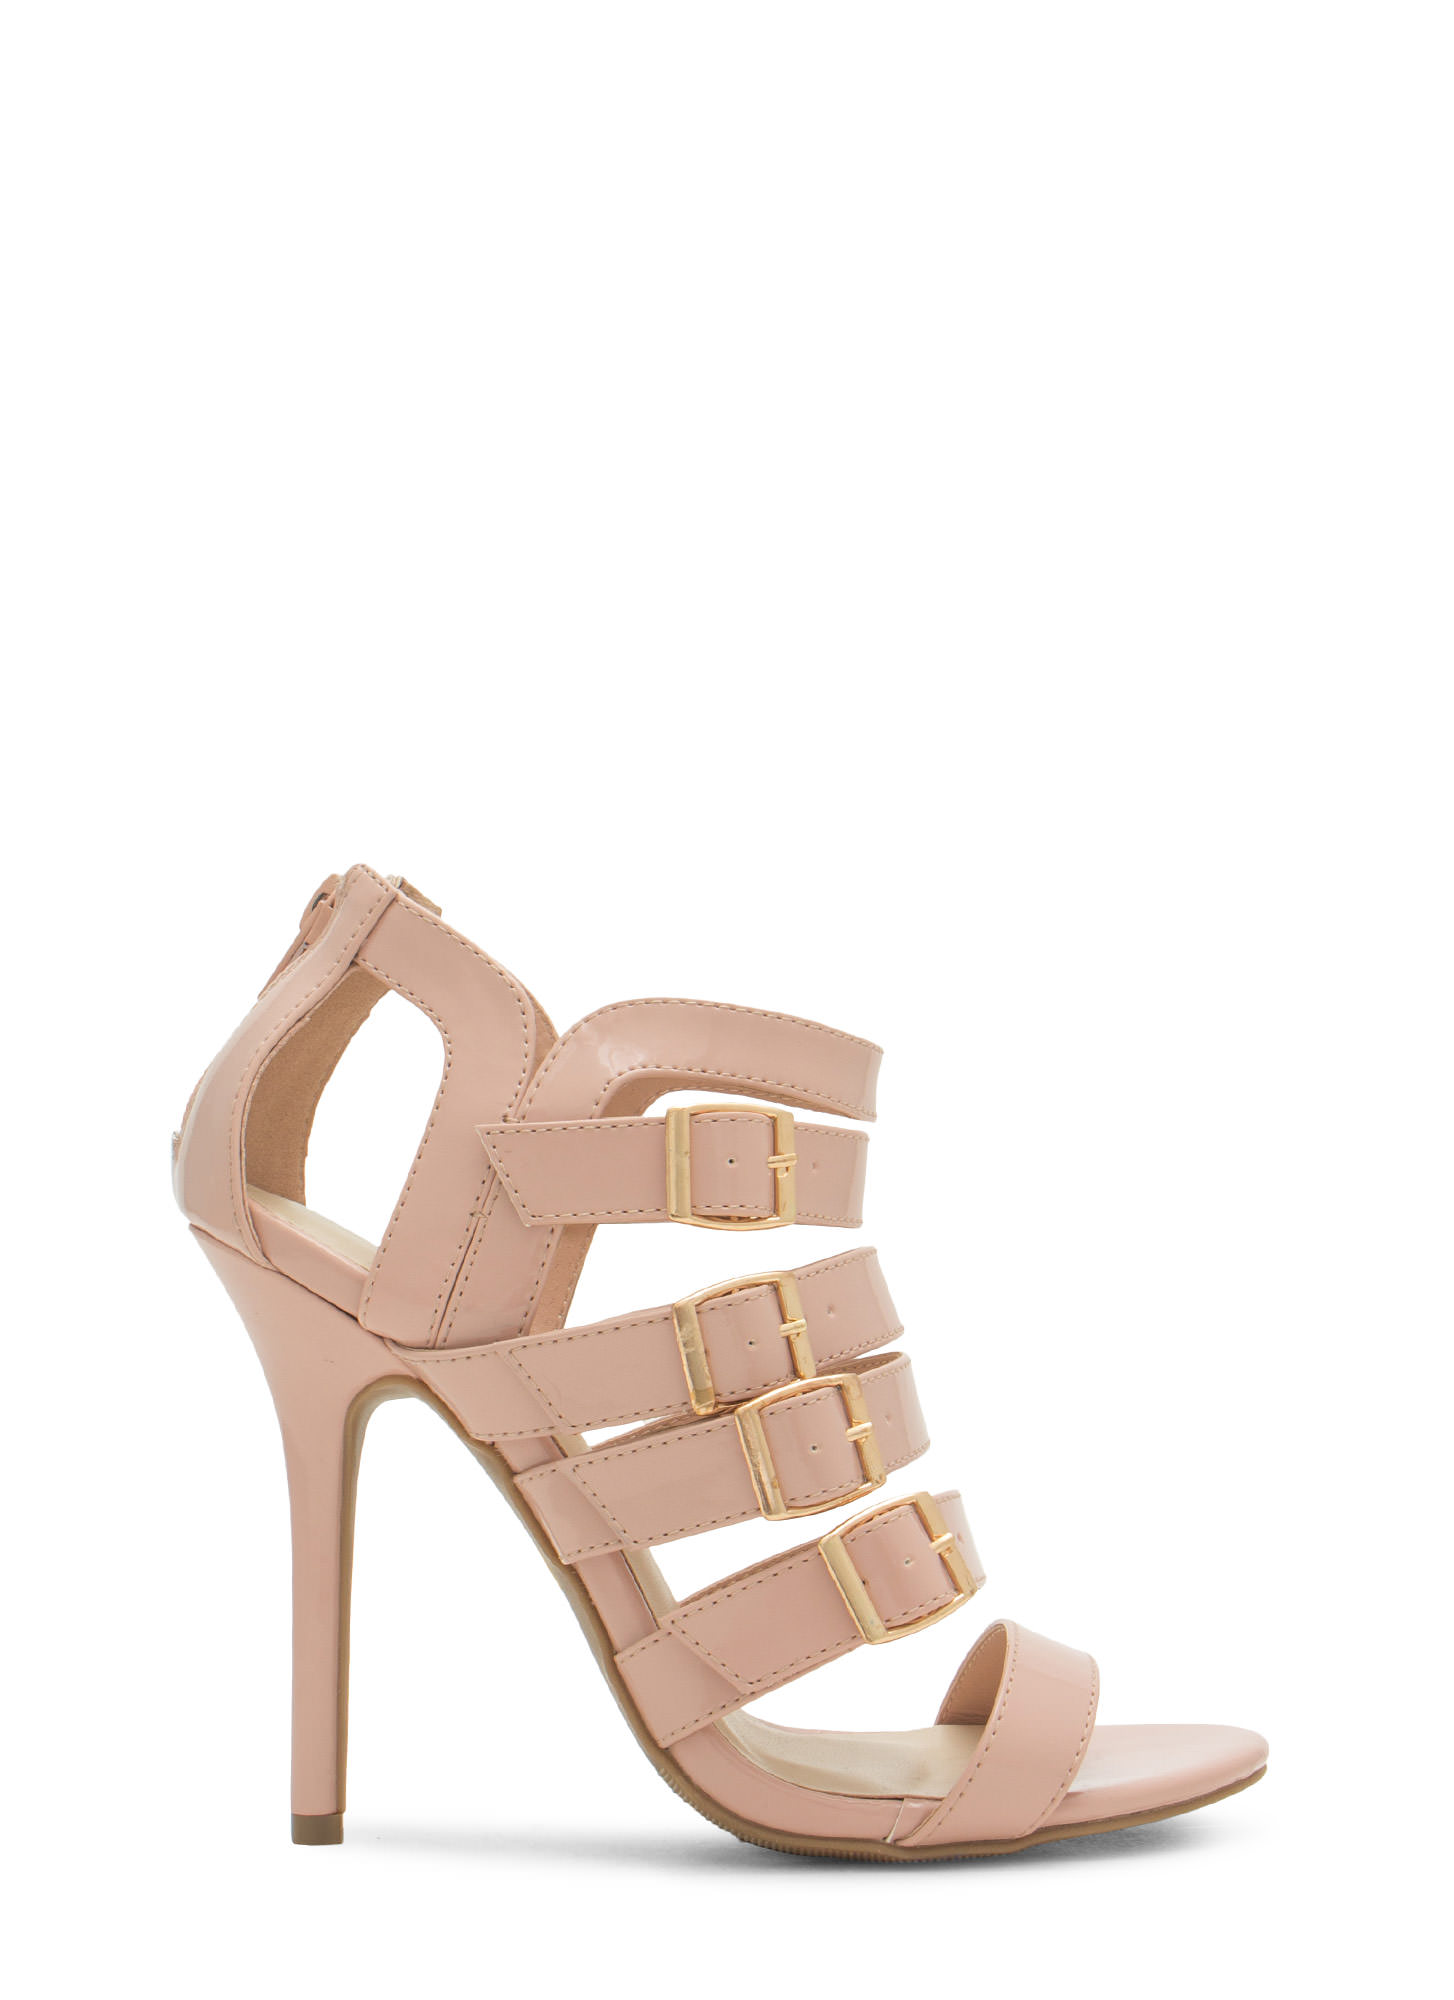 Ladder To The Top Strappy Heels NUDE